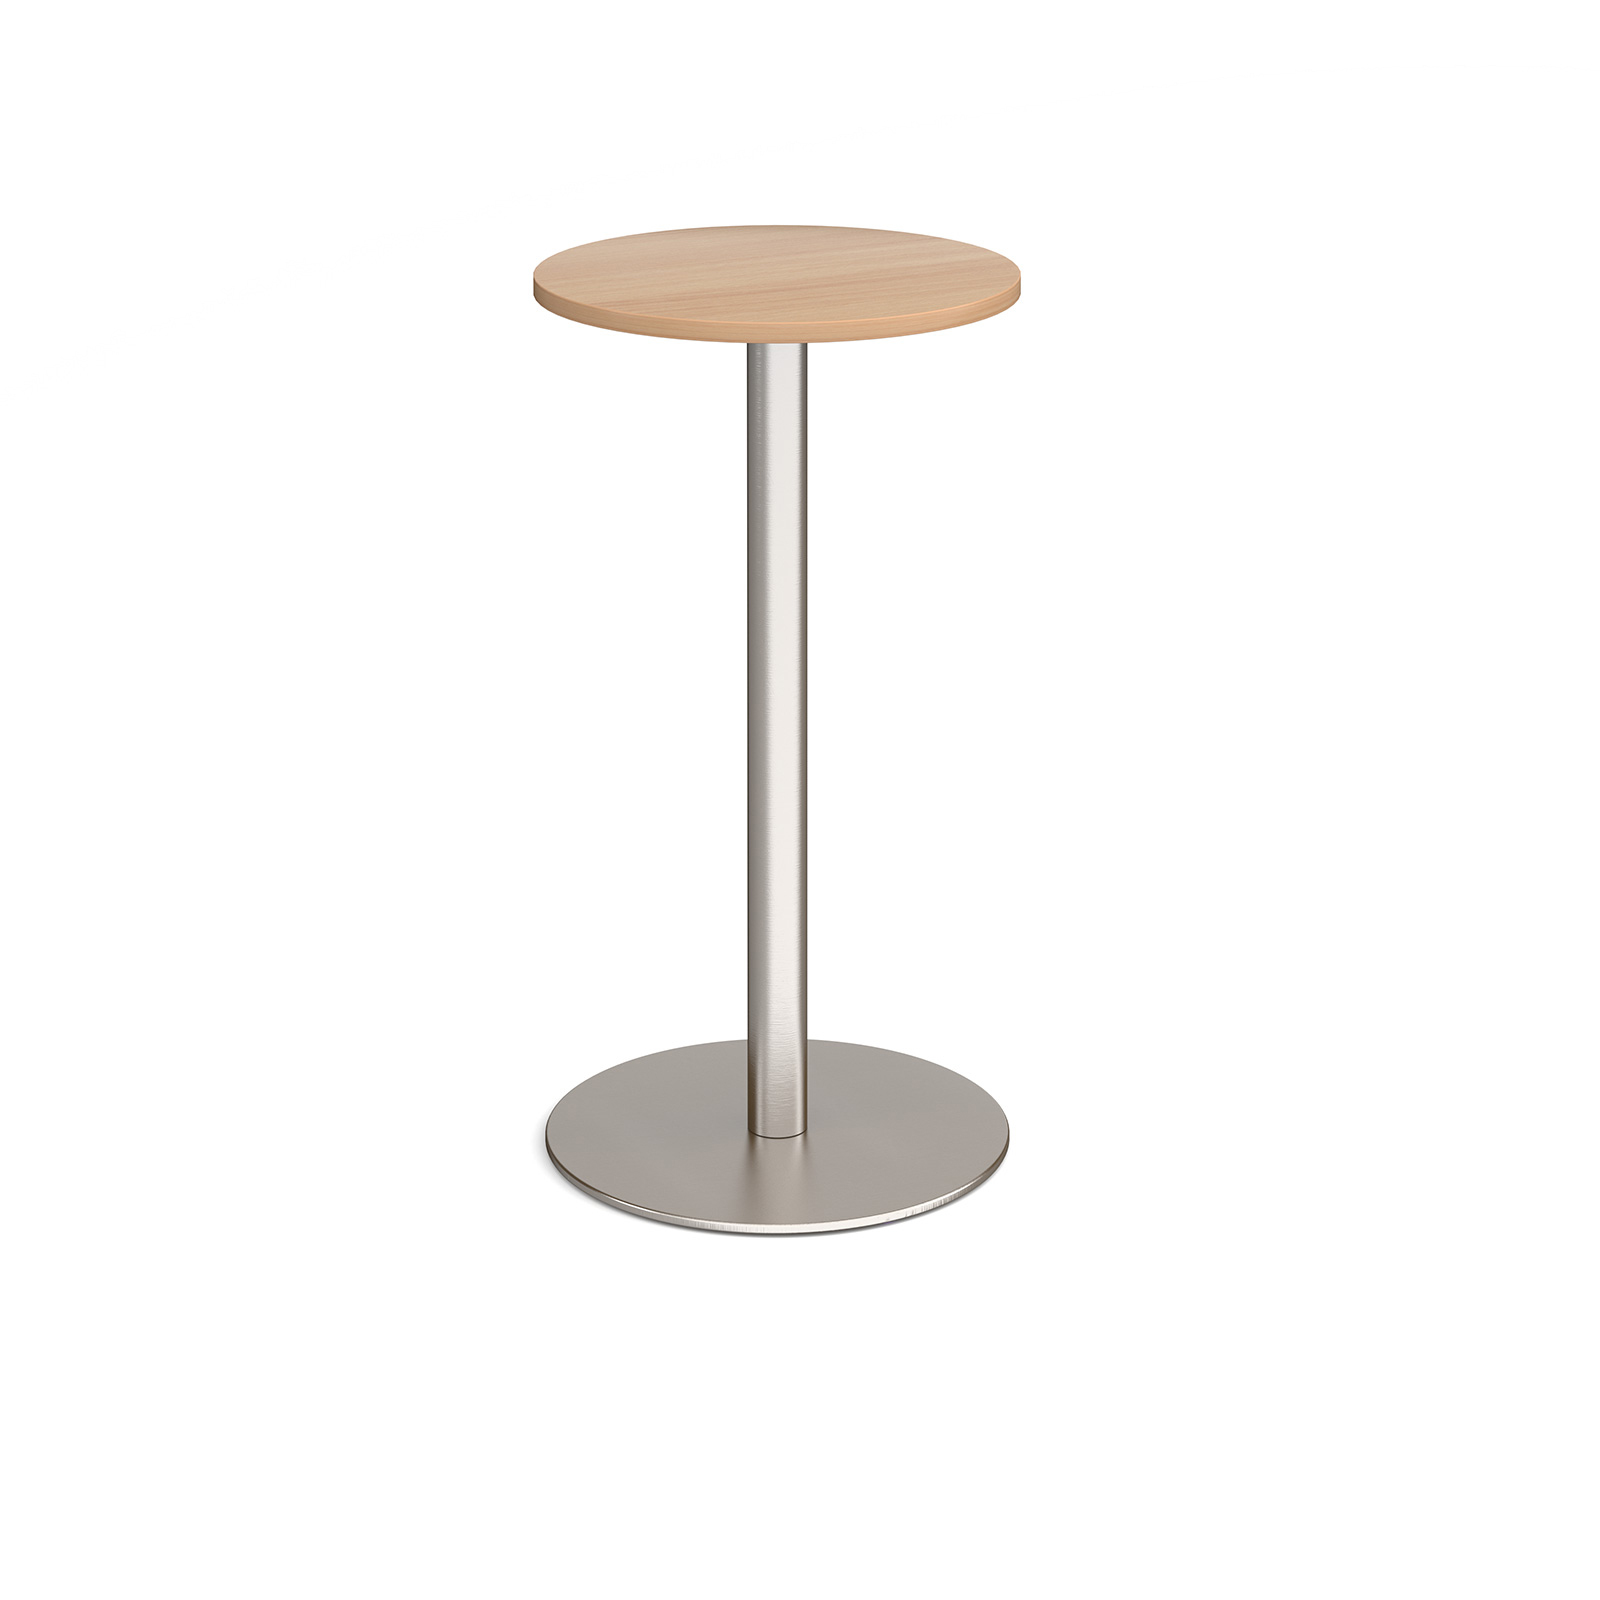 Canteen / Dining Monza circular poseur table with flat round base